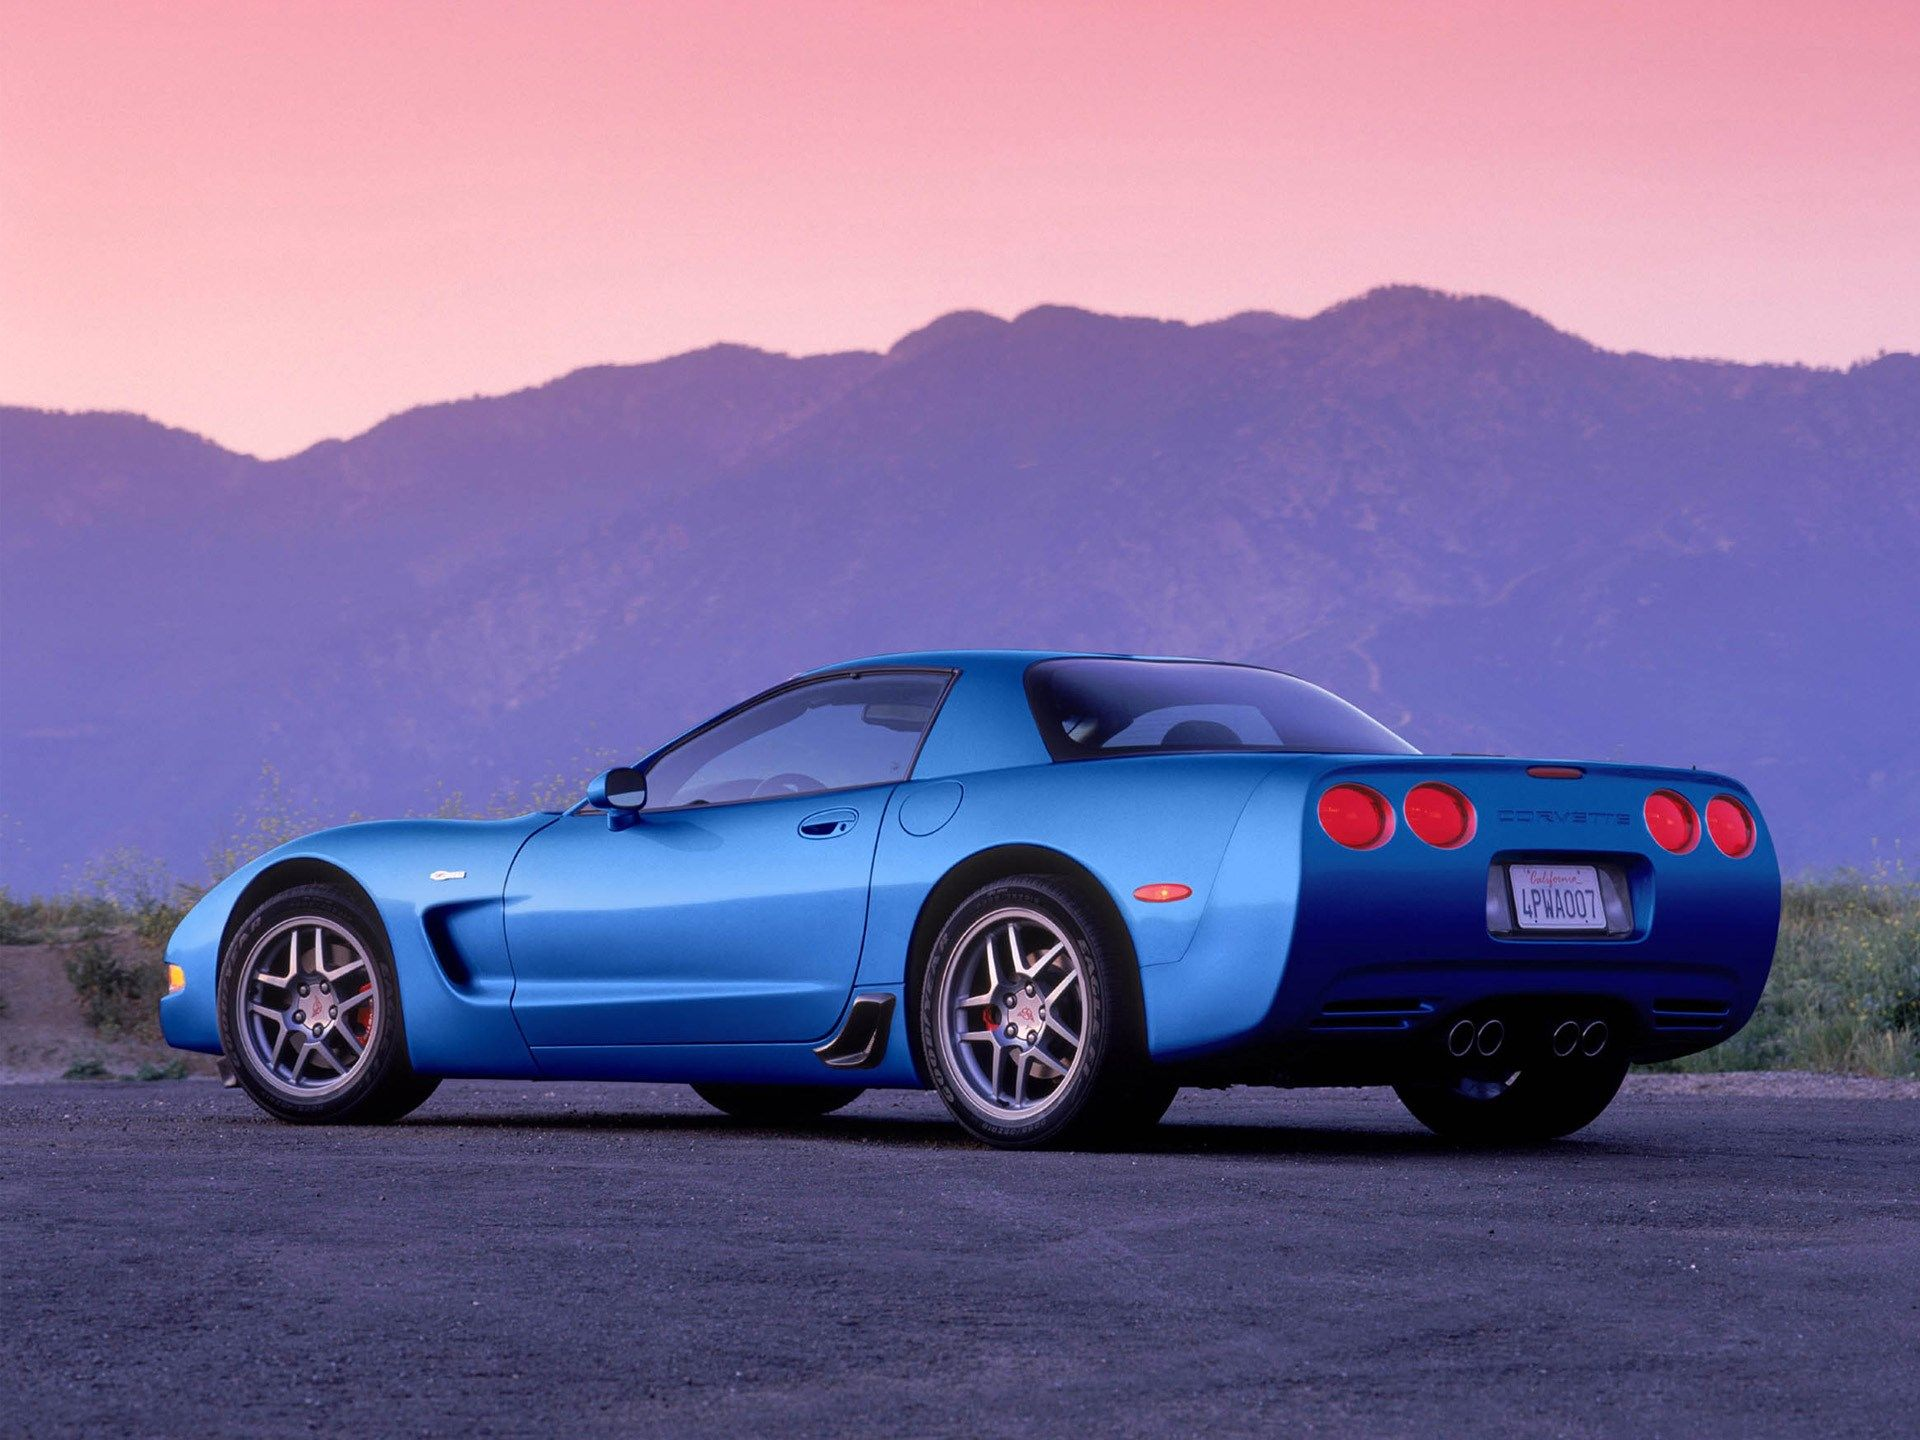 Category Corvette >> Pictures Of Chevrolet Corvette Chevrolet Corvette Category